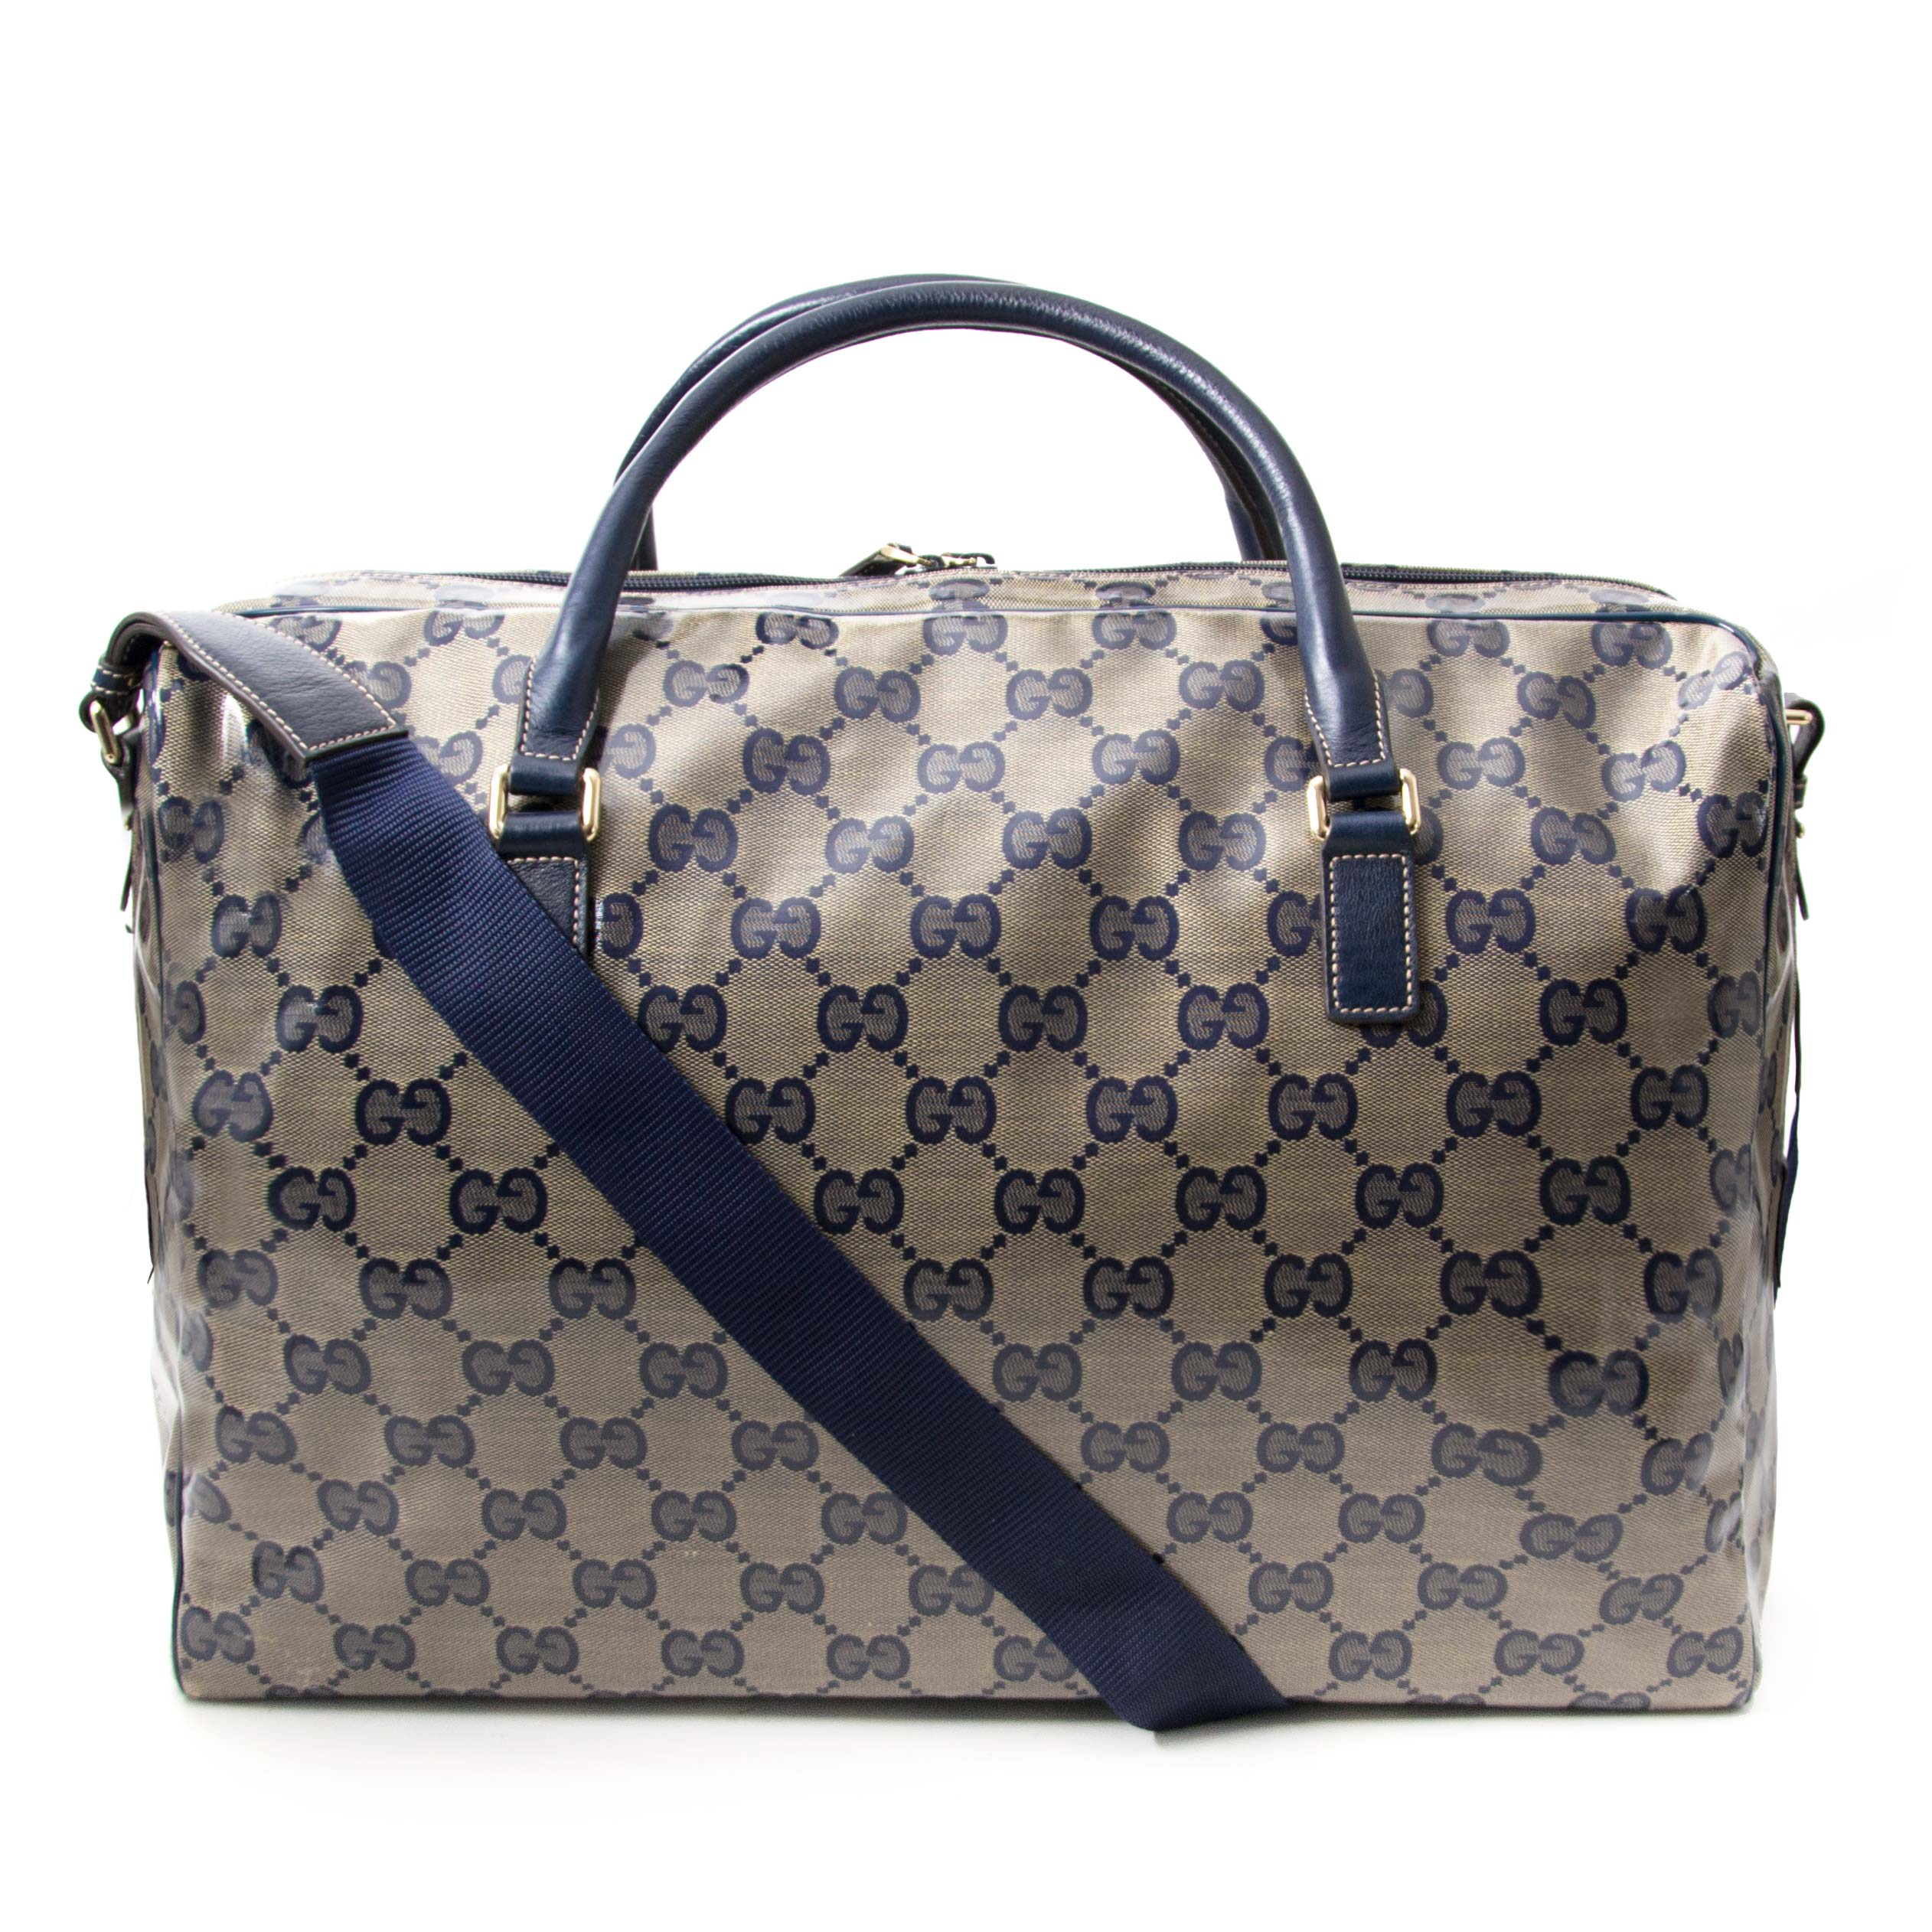 16a128682 ... Buy and sell your authentic Gucci GG Supreme Coated Monogram Canvas  Travel Bag for the best